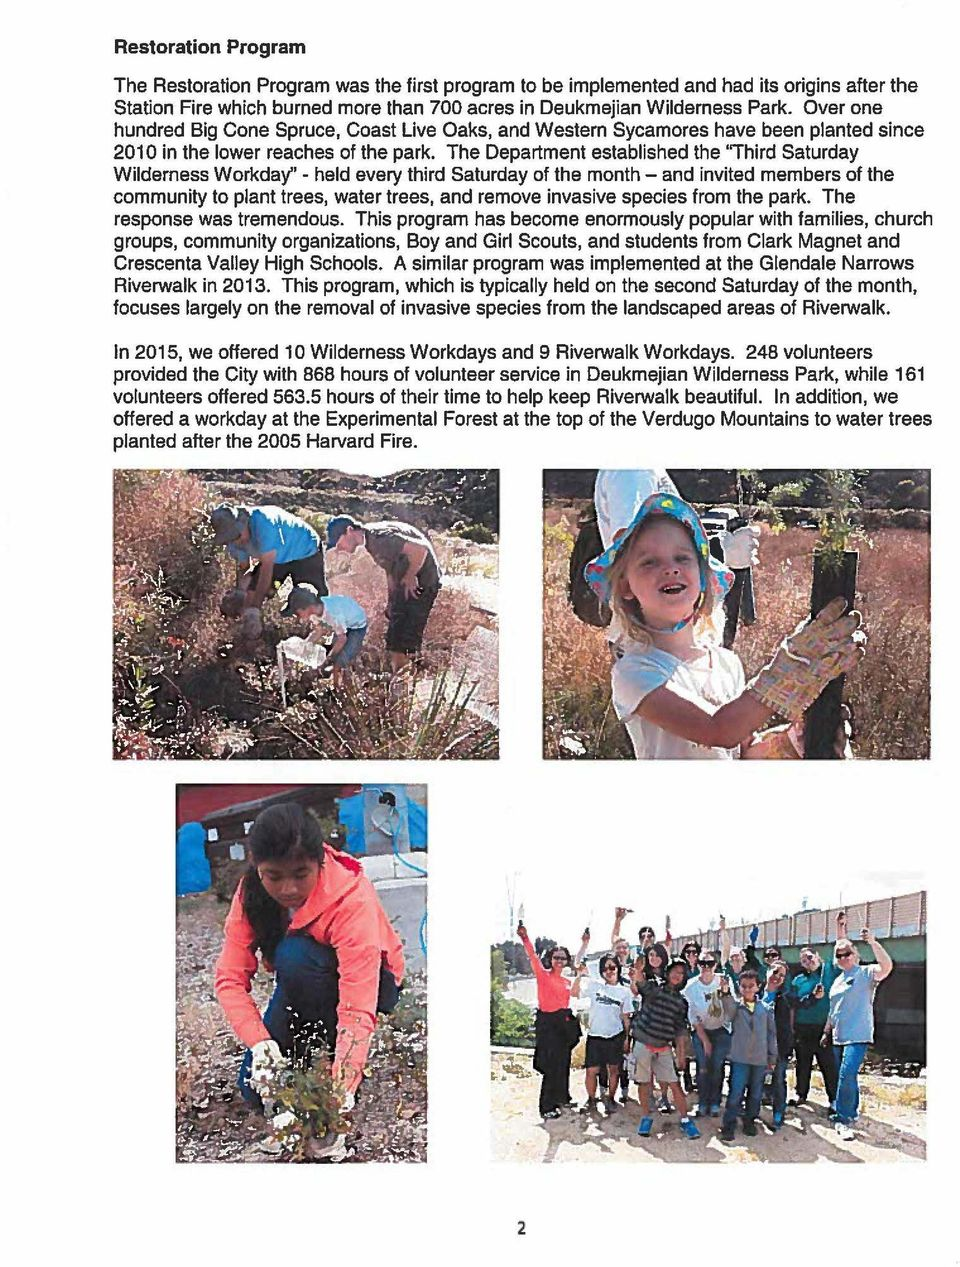 "The Department established the ''Third Saturday Wilderness Workday"" - held every third Saturday of the month - and invited members of the community to plant trees, water trees, and remove invasive"